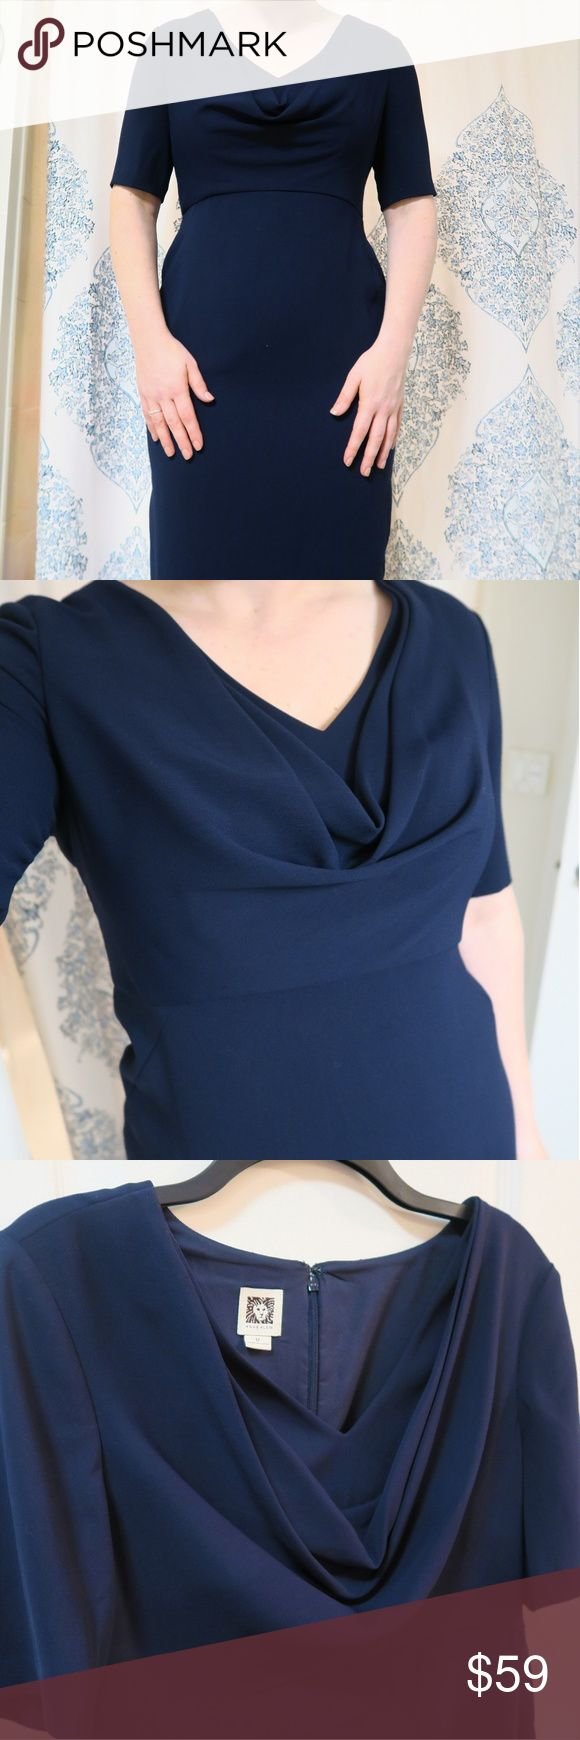 Anne Klein Navy Blue Sheath Dress - Size 12 Anne Klein navy blue sheath dress with scope neck. Perfect condition. Great dress for wedding, work, dinner, etc. I'm 5'10 and the dress sits right above my knee. Size 12 and true to size. Will ship same day of sale. Calvin Klein Dresses Wedding